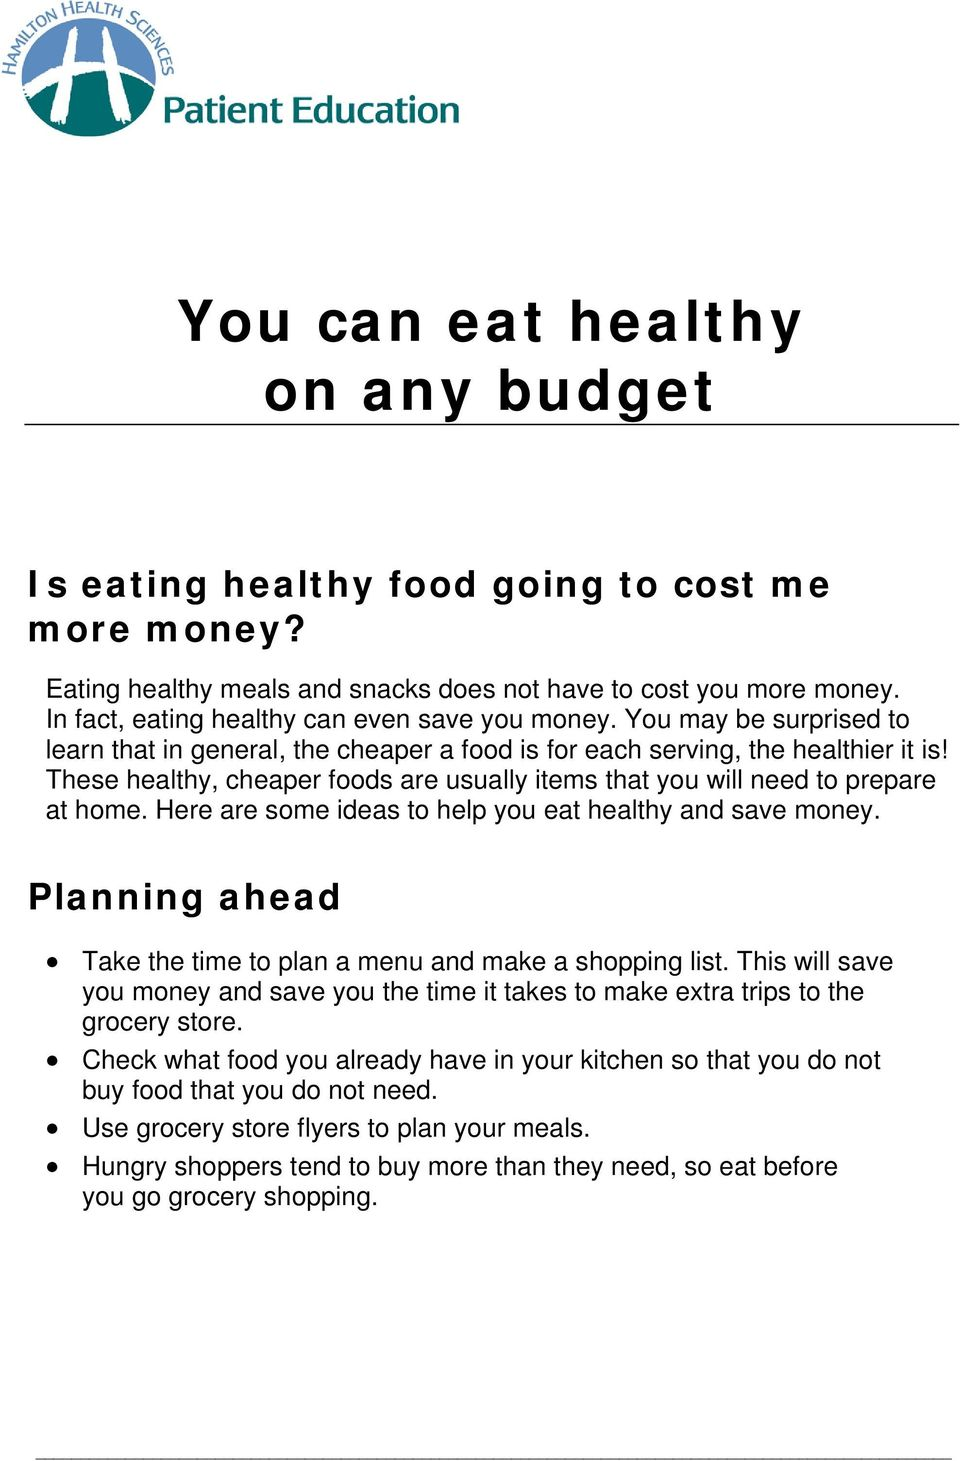 These healthy, cheaper foods are usually items that you will need to prepare at home. Here are some ideas to help you eat healthy and save money.